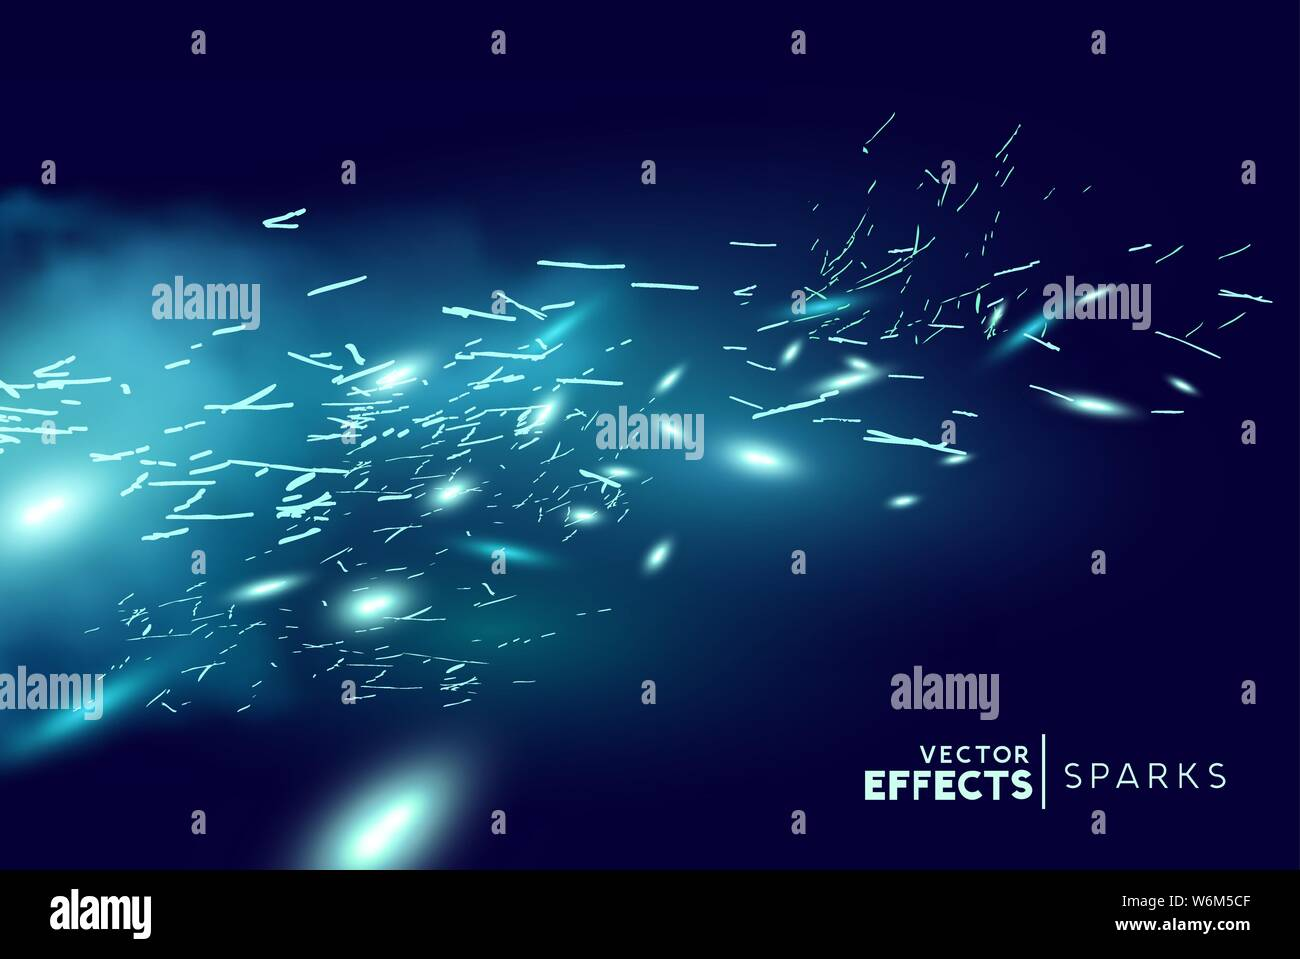 Magical fantasy blue fire sparks blowing through the wind. Vector illustration. Stock Vector